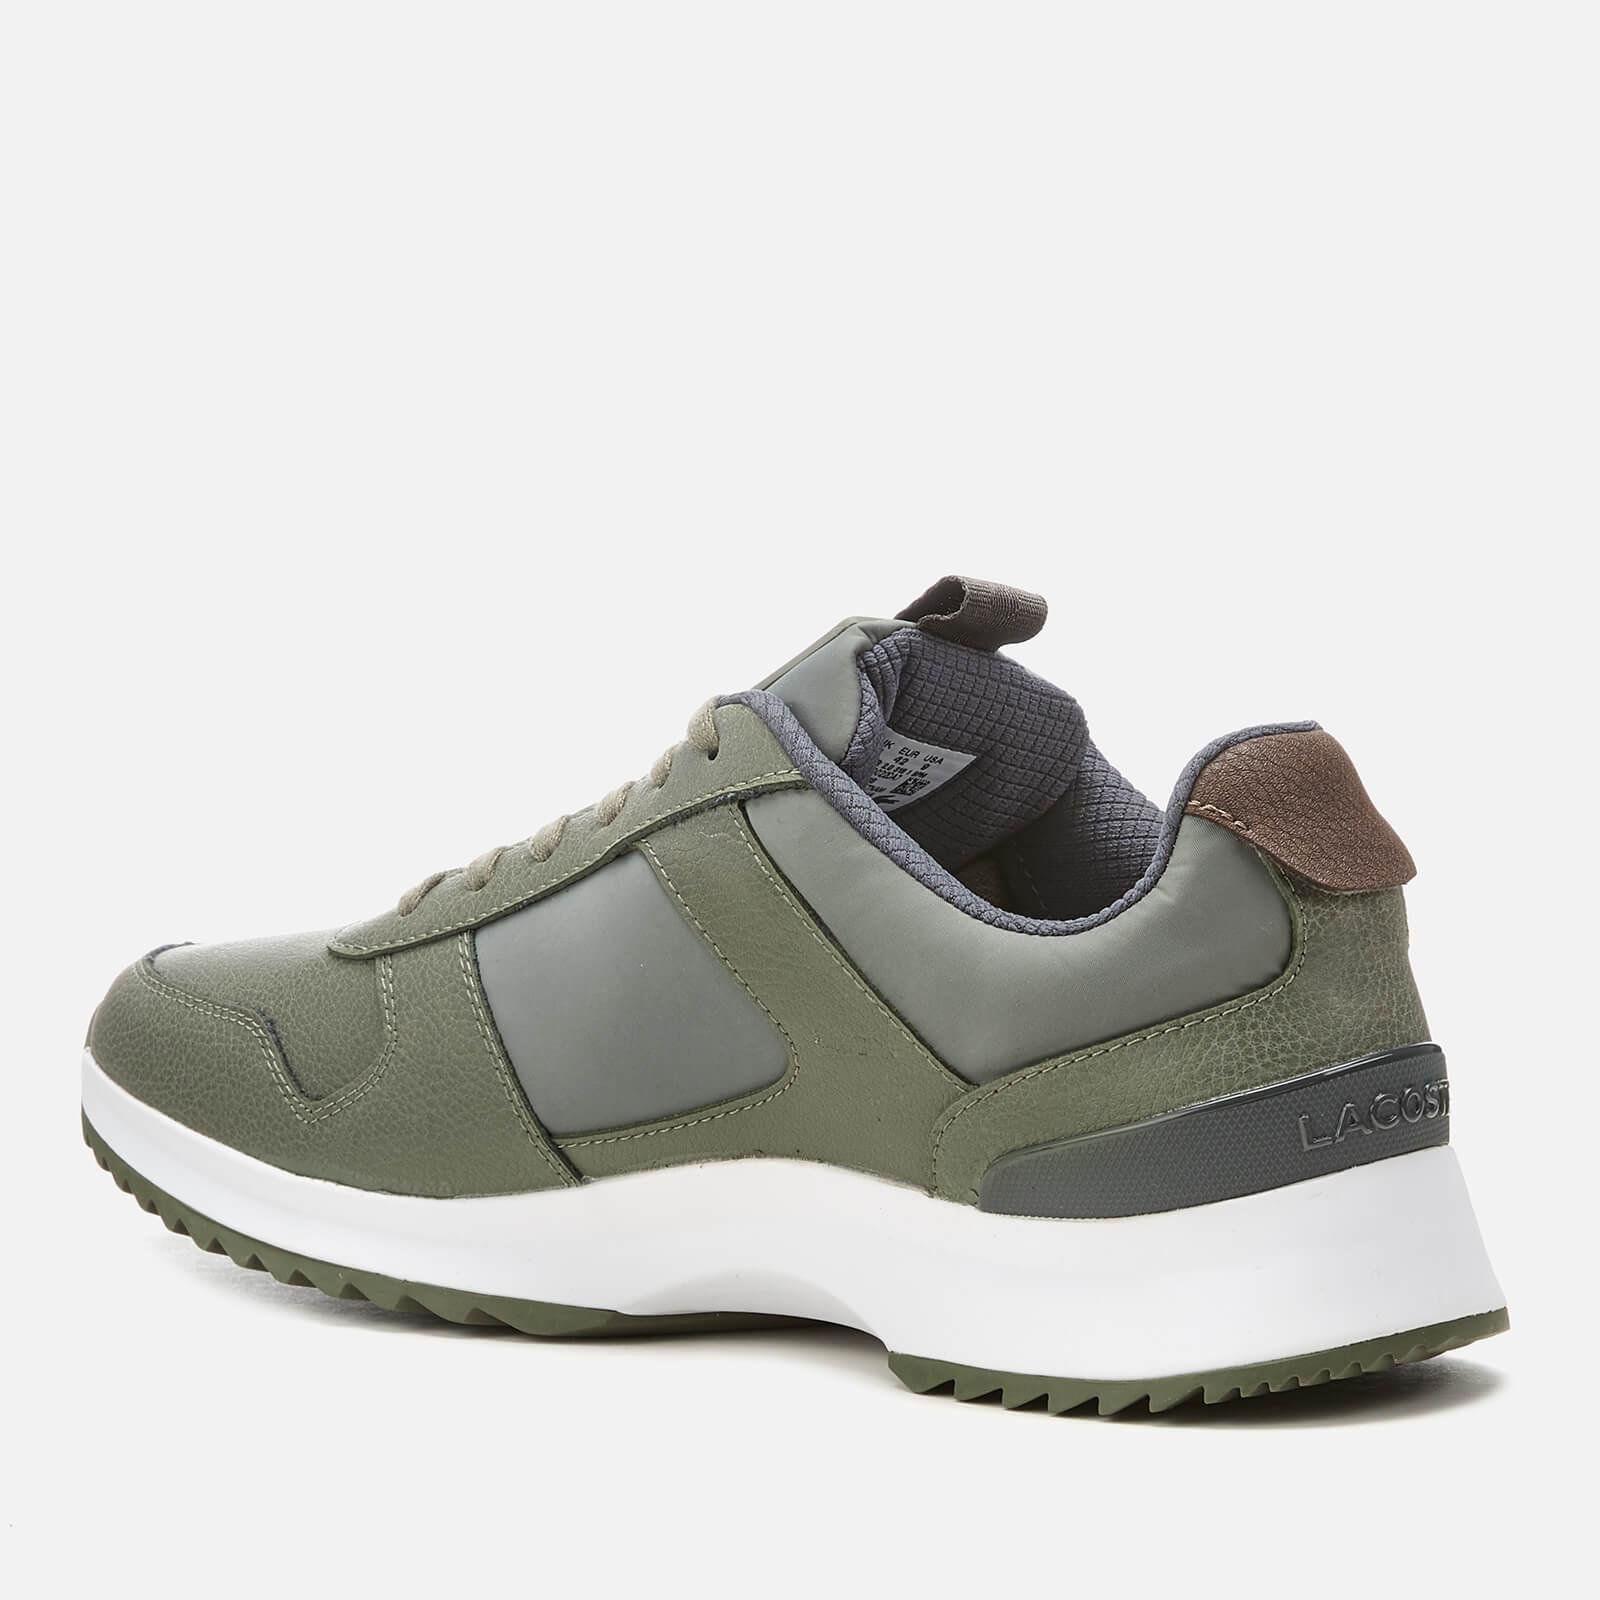 e2ce239454653 Lacoste - Green Joggeur 2.0 318 1 Textile leather Runner Style Trainers for  Men -. View fullscreen